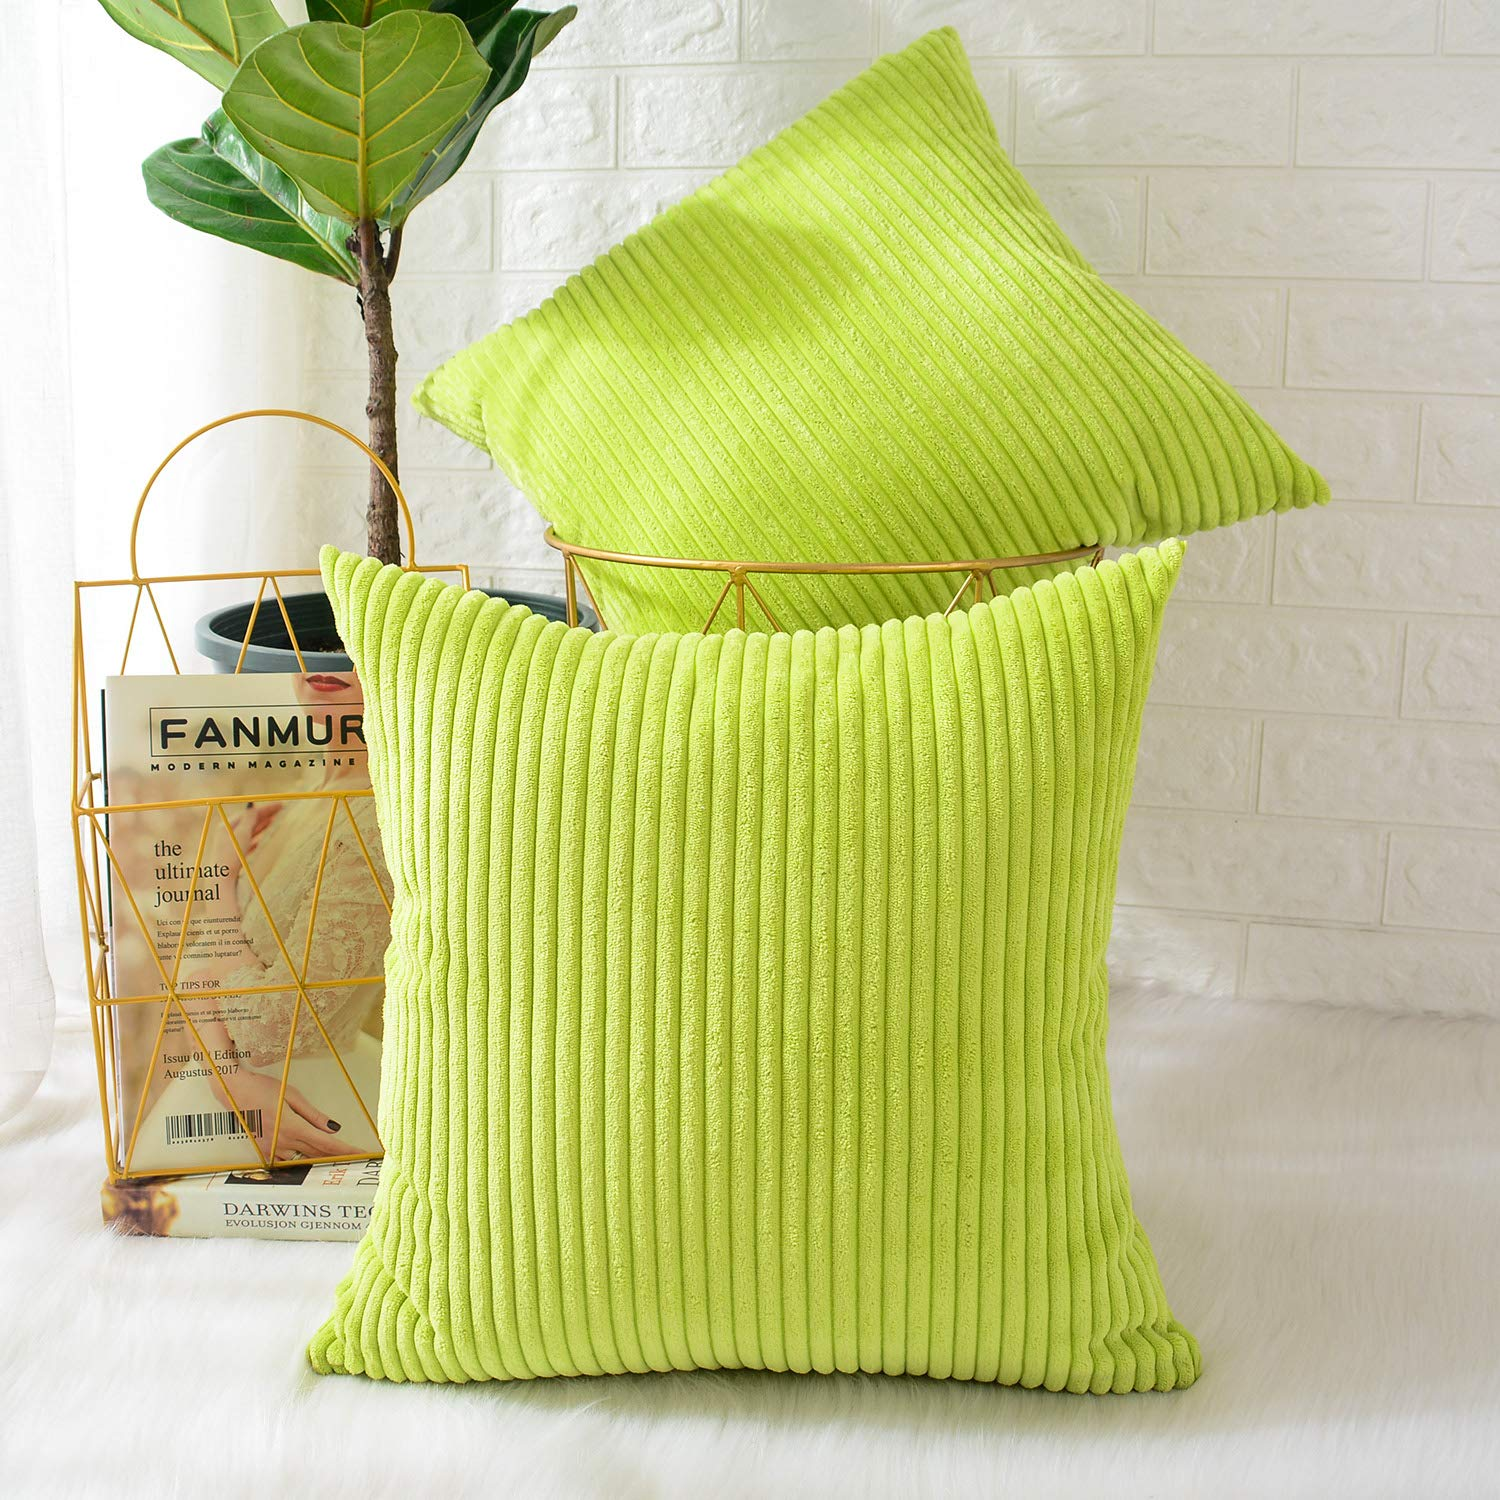 MERNETTE New Year/Christmas Decorations Corduroy Soft Decorative Square Throw Pillow Cover Cushion Covers Pillowcase, Home Decor for Party/Xmas 16x16 Inch/40x40 cm, Green, Set of 2